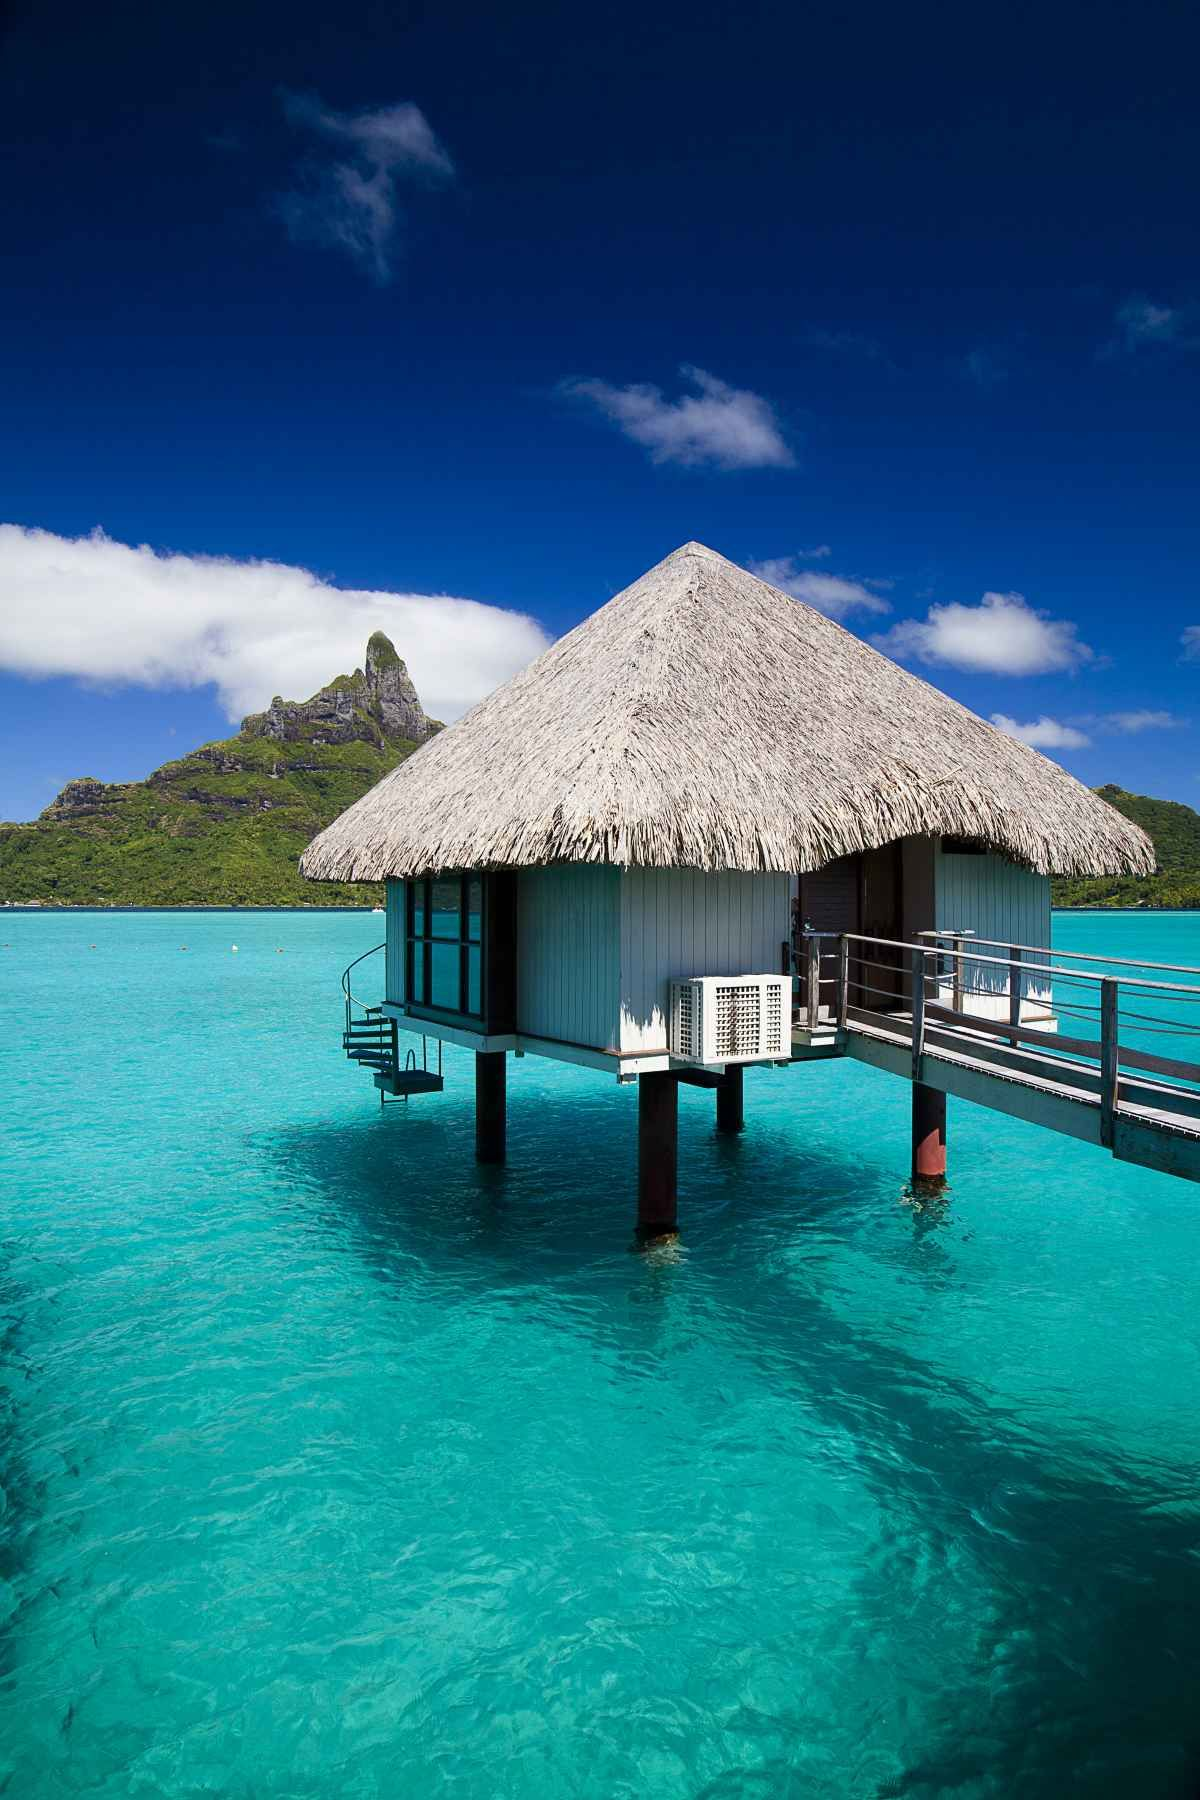 50 Best Overwater Bungalow Photos from Tahiti Wanderlust